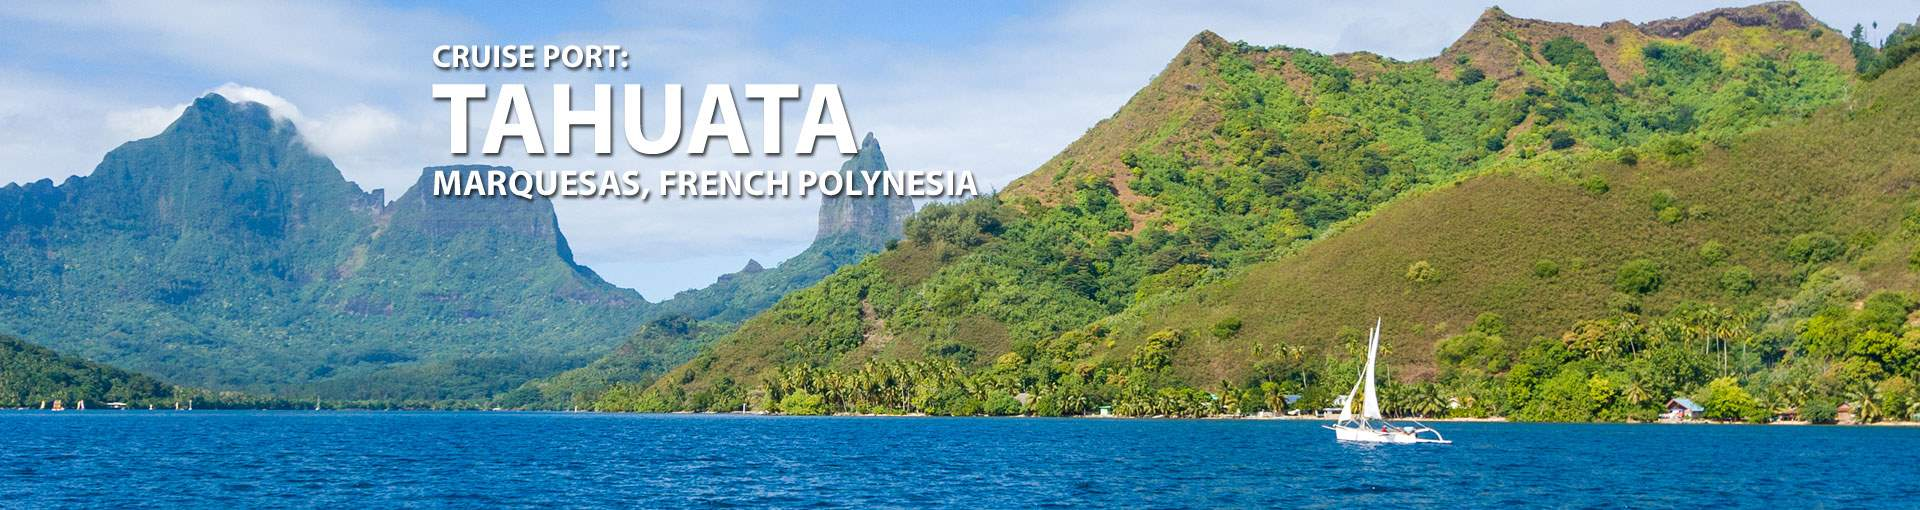 Cruises to Tahuata, Marquesas, French Polynesia